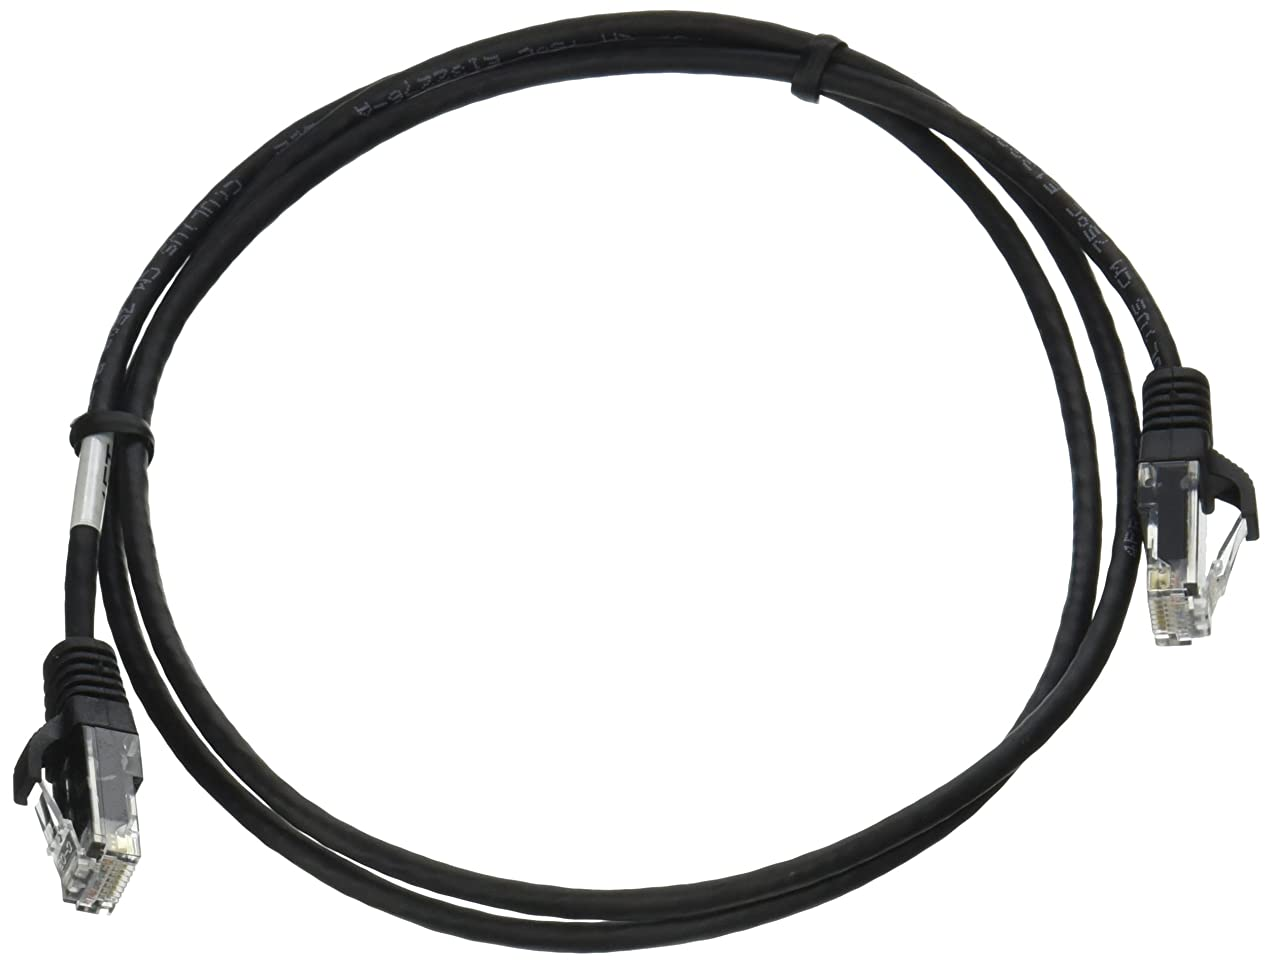 C2G 01059 Cat5e Cable - Snagless Unshielded Slim Ethernet Network Patch Cable, Black (4 Feet, 1.21 Meters)